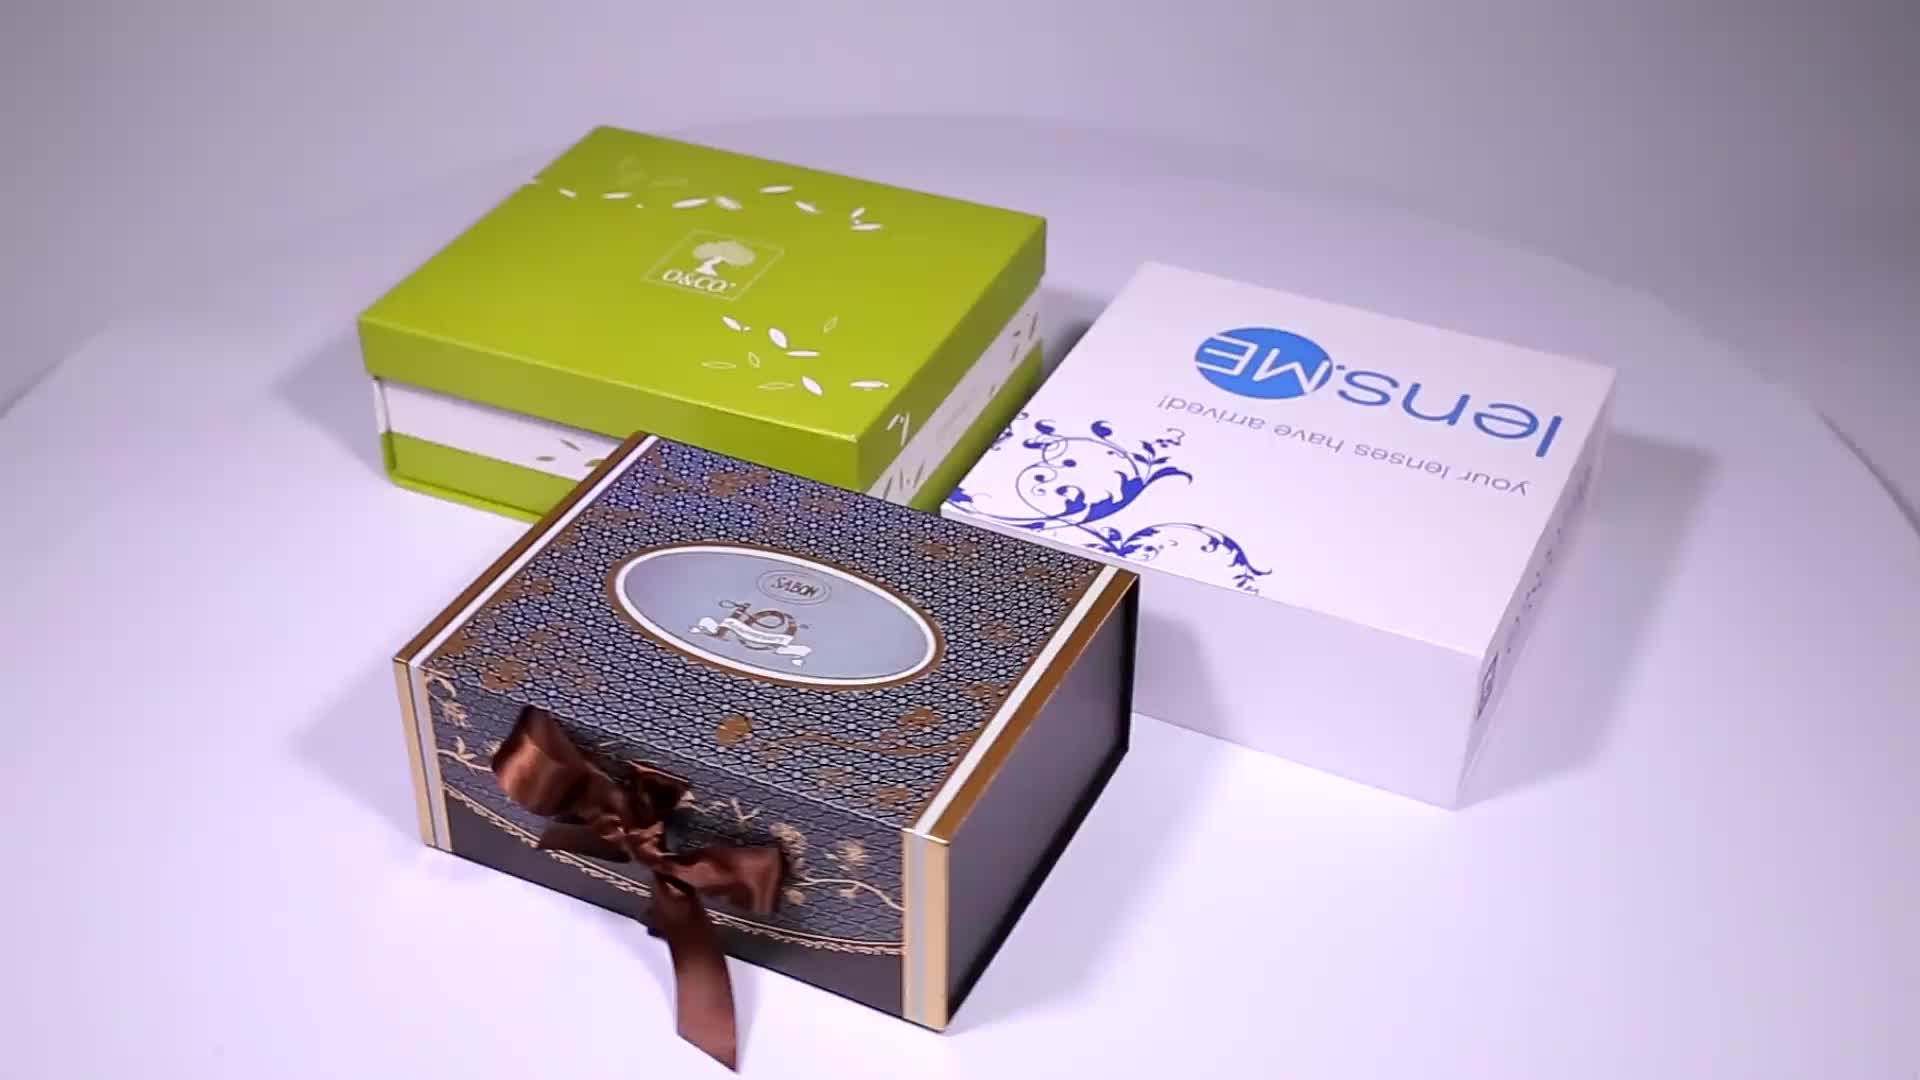 Handmade Logo Customized Magnetic Lid Storage Box Gift Box With Magnet Closure Magnet Lid Storage Box